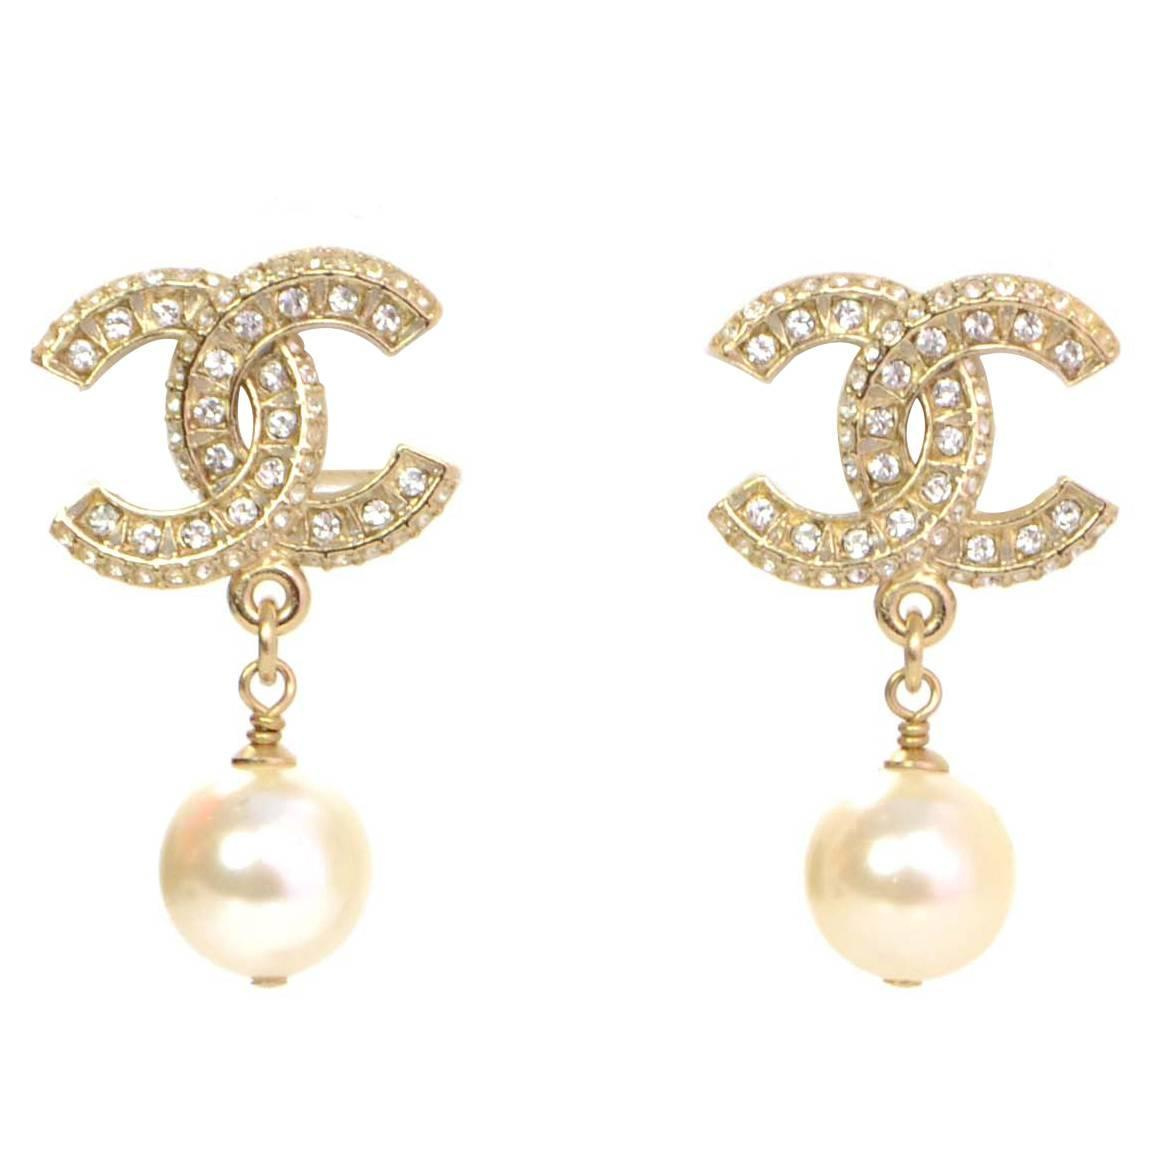 channel jewelry earrings chanel new 16 and pearl cc drop earrings at 1stdibs 8663